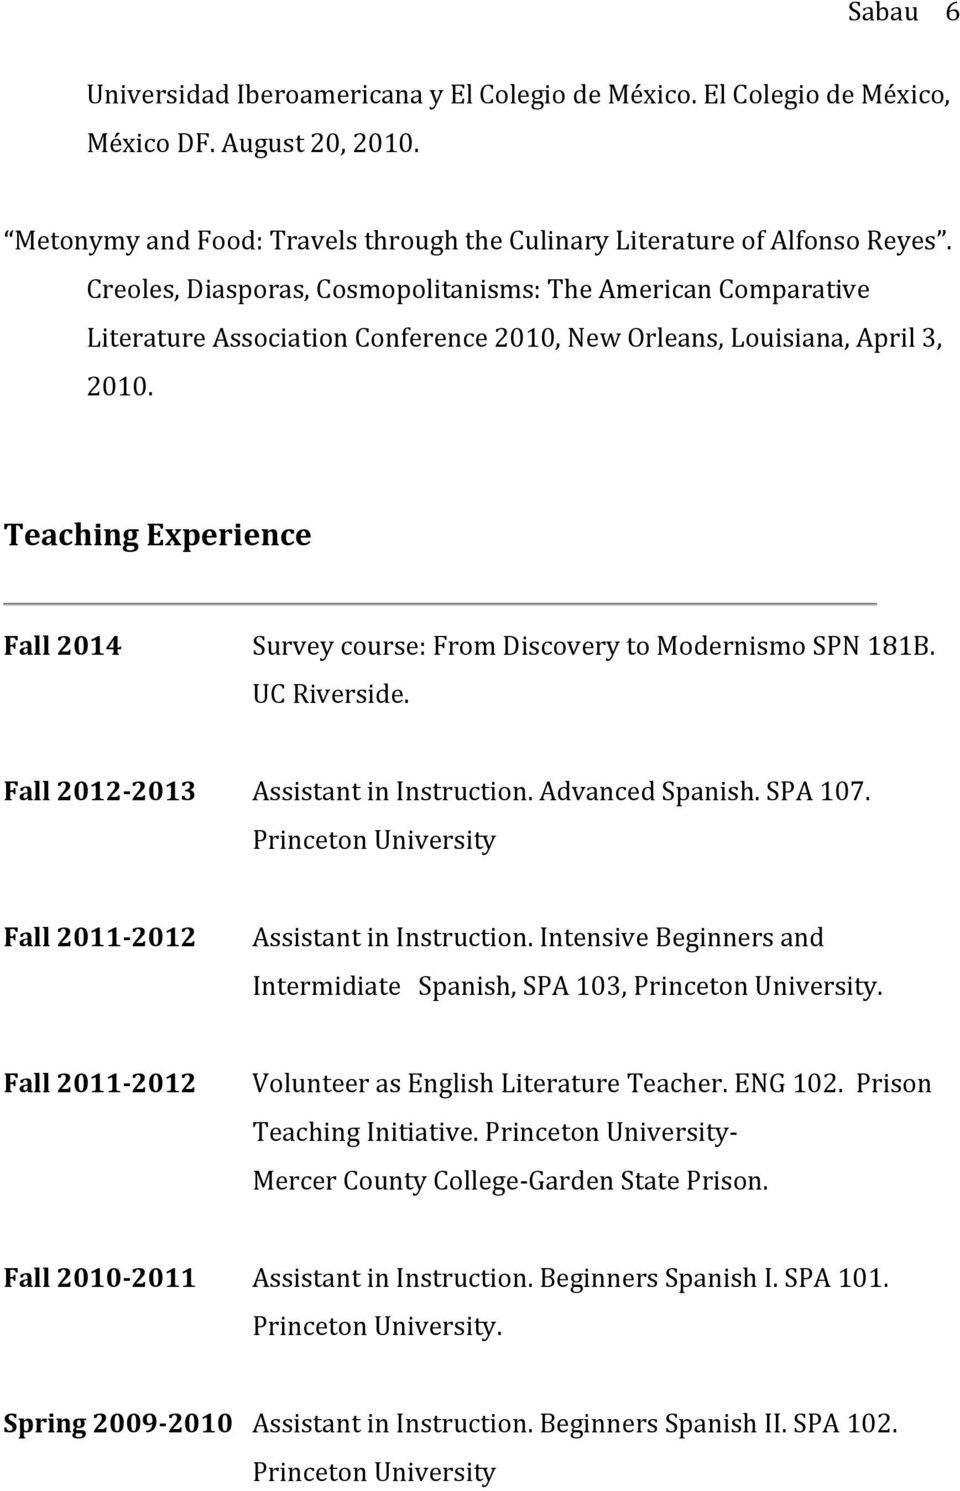 Teaching Experience Fall 2014 Survey course: From Discovery to Modernismo SPN 181B. UC Riverside. Fall 2012-2013 Assistant in Instruction. Advanced Spanish. SPA 107.